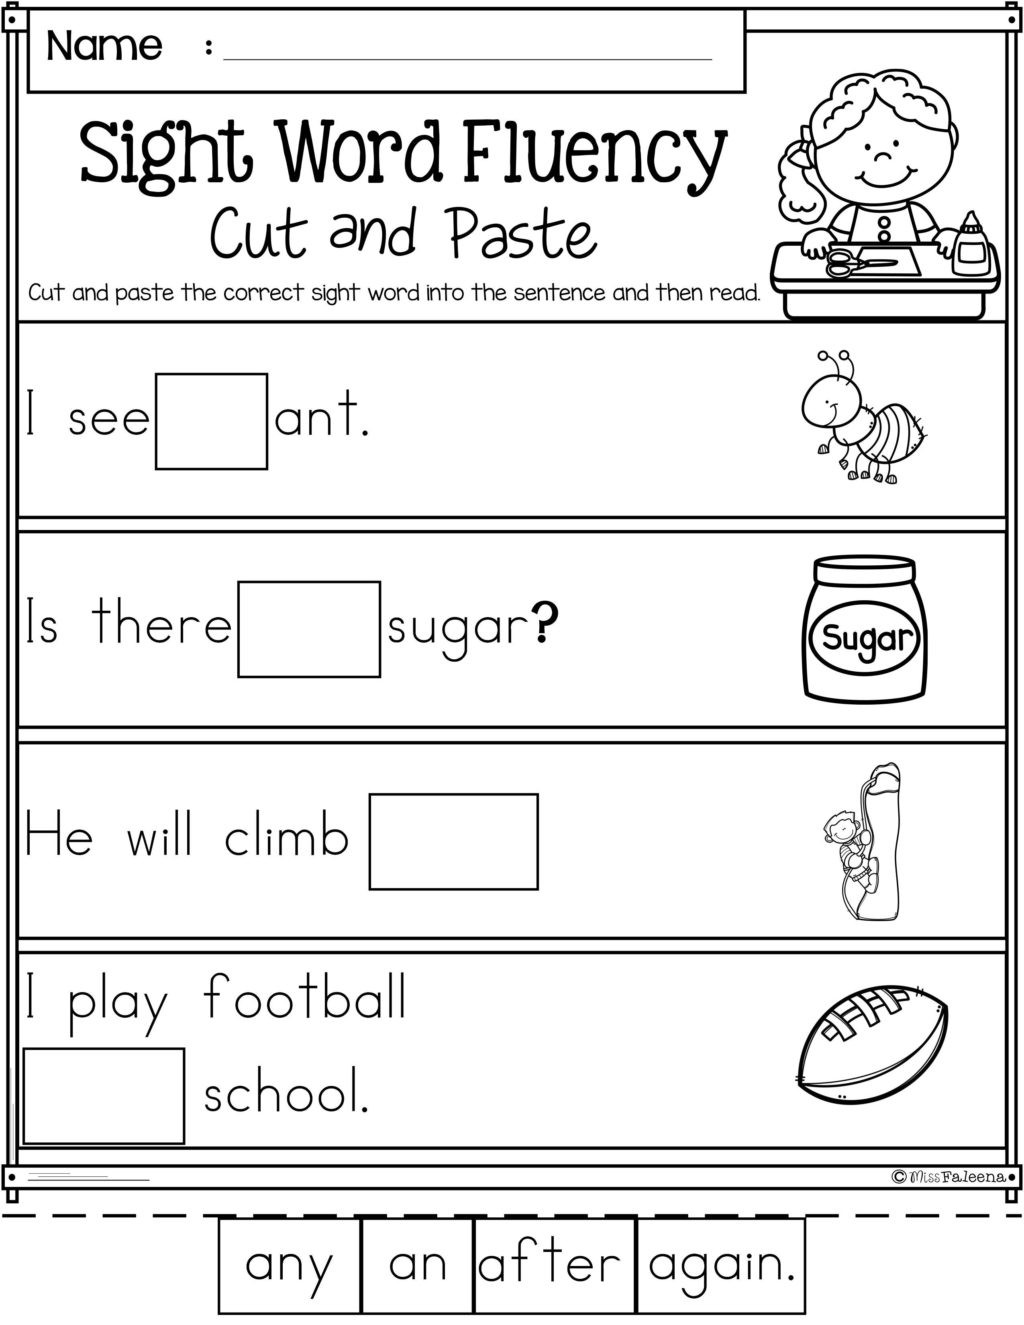 Social Studies Worksheet 3rd Grade Worksheet Reading Worskheets Worksheet Ideas Dolch Wordt